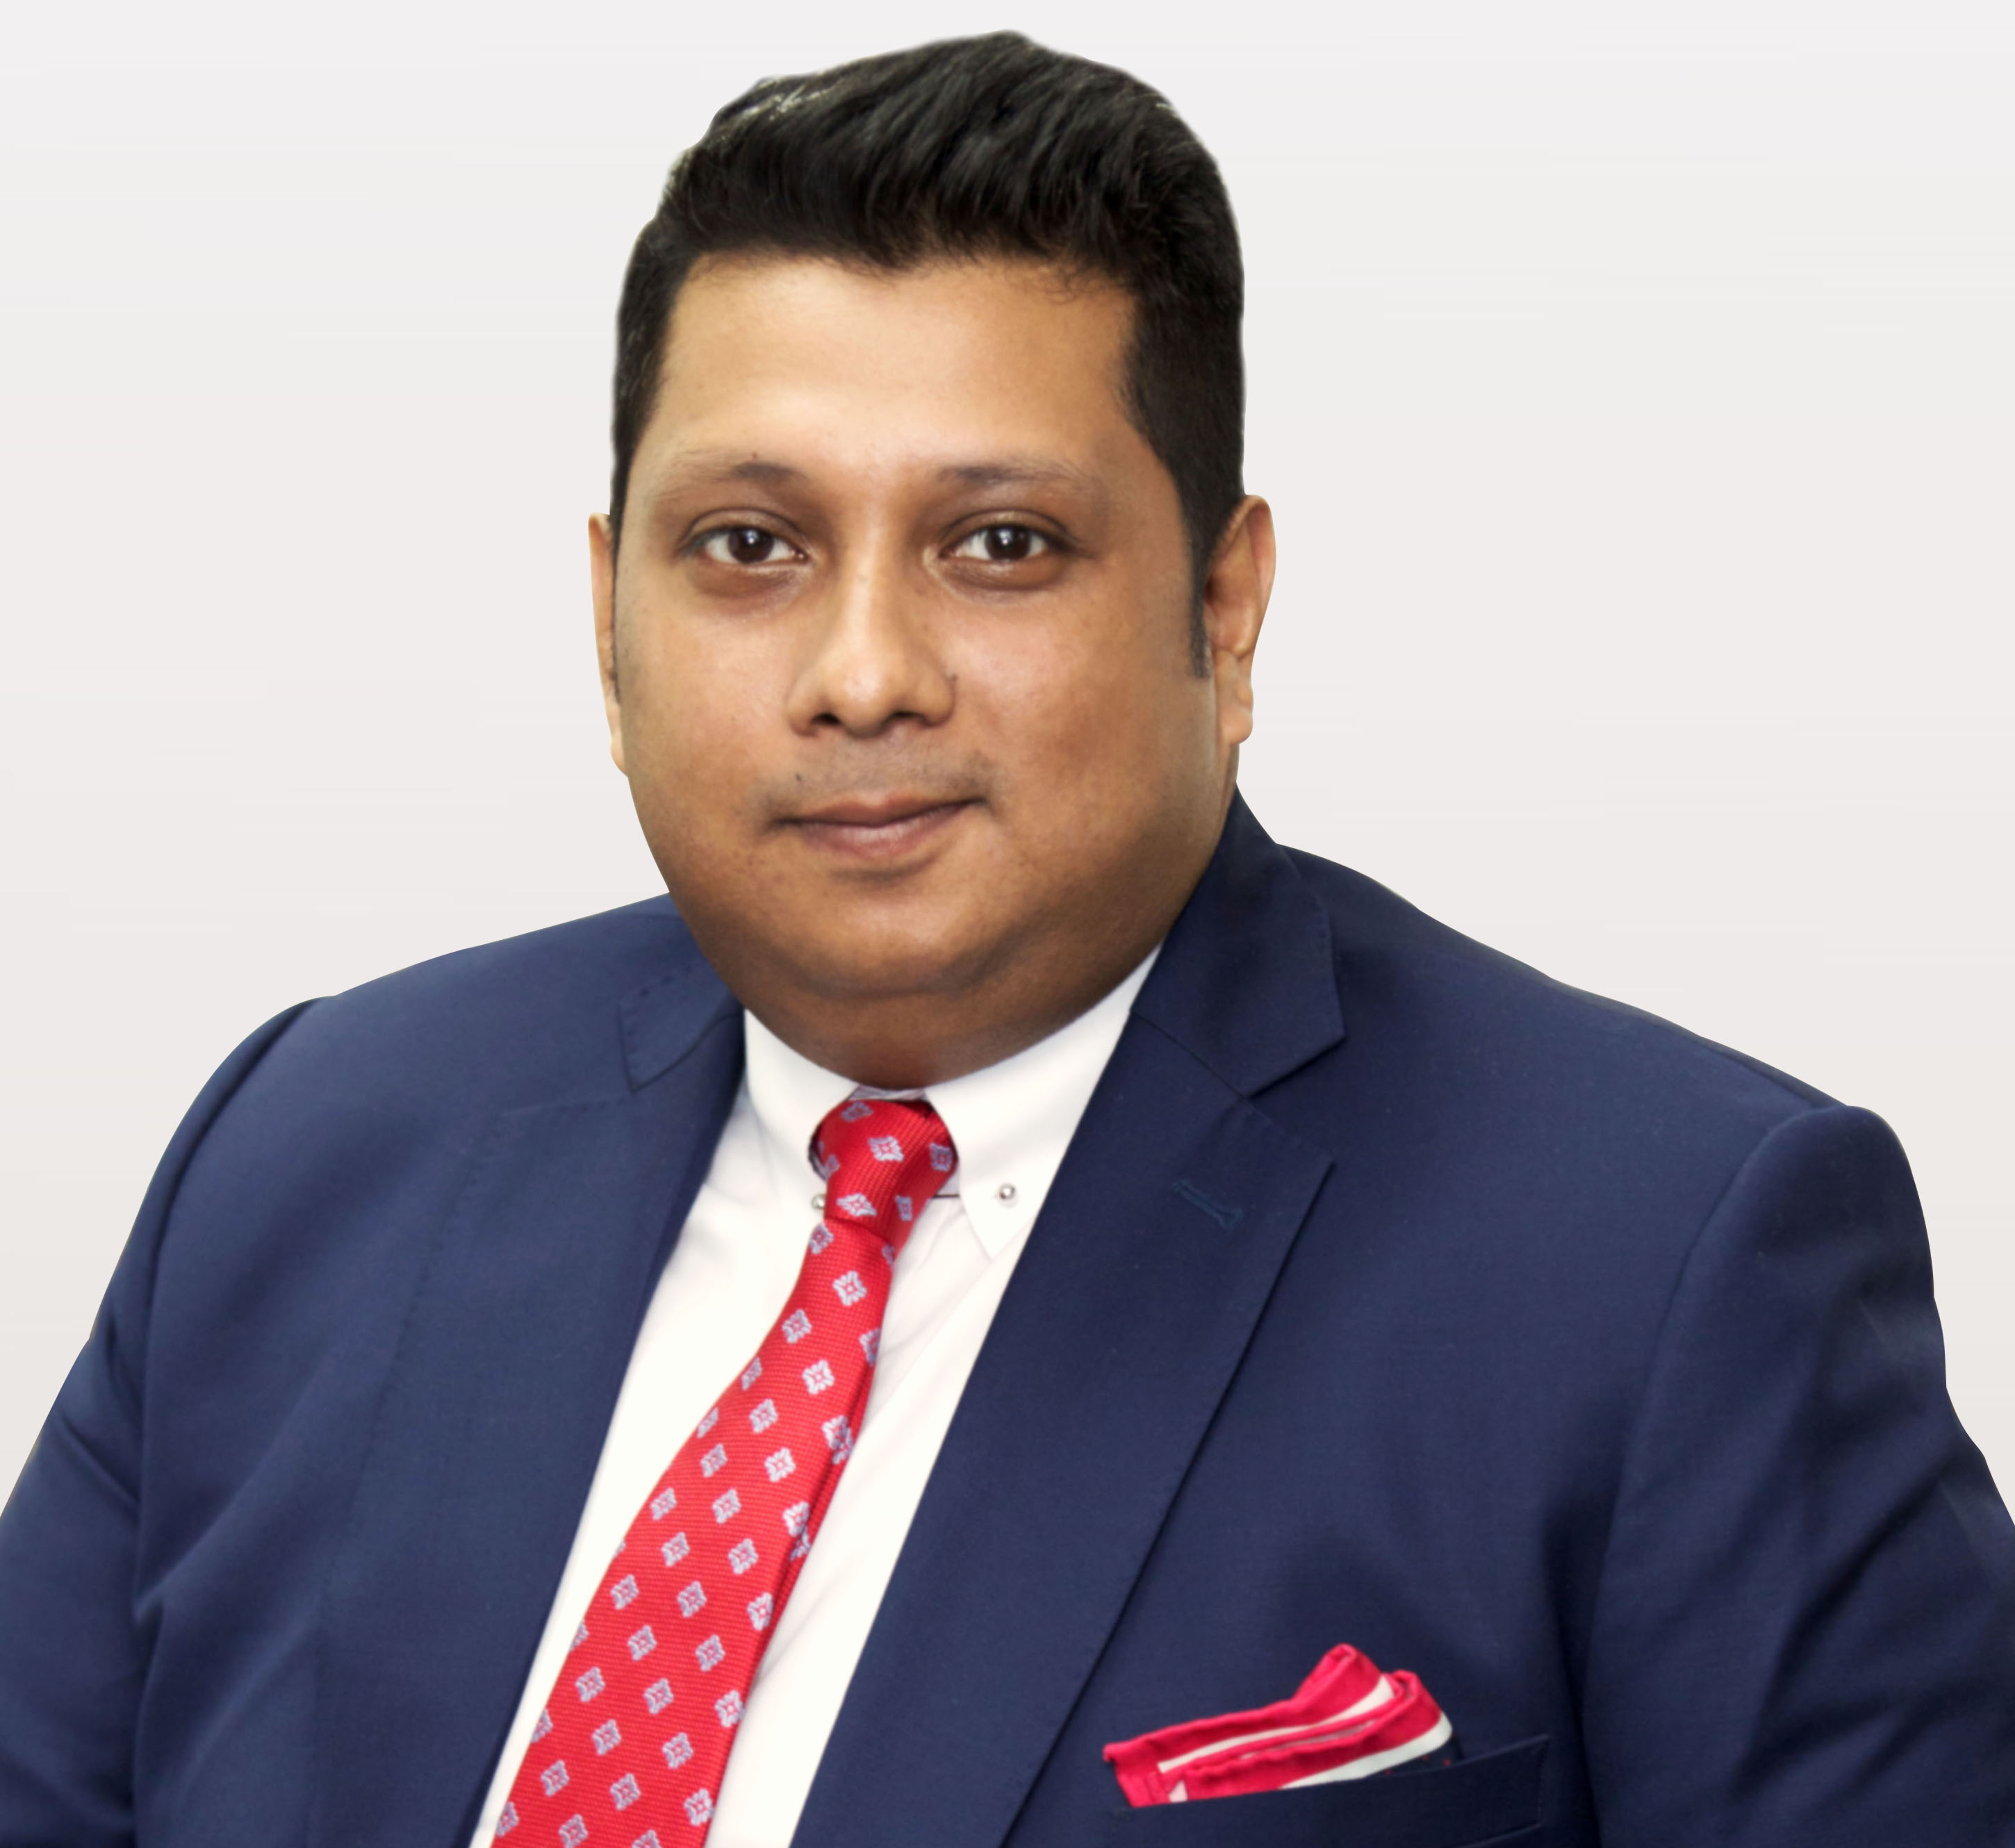 Tanjil Chowdhury made Prime Bank chairman